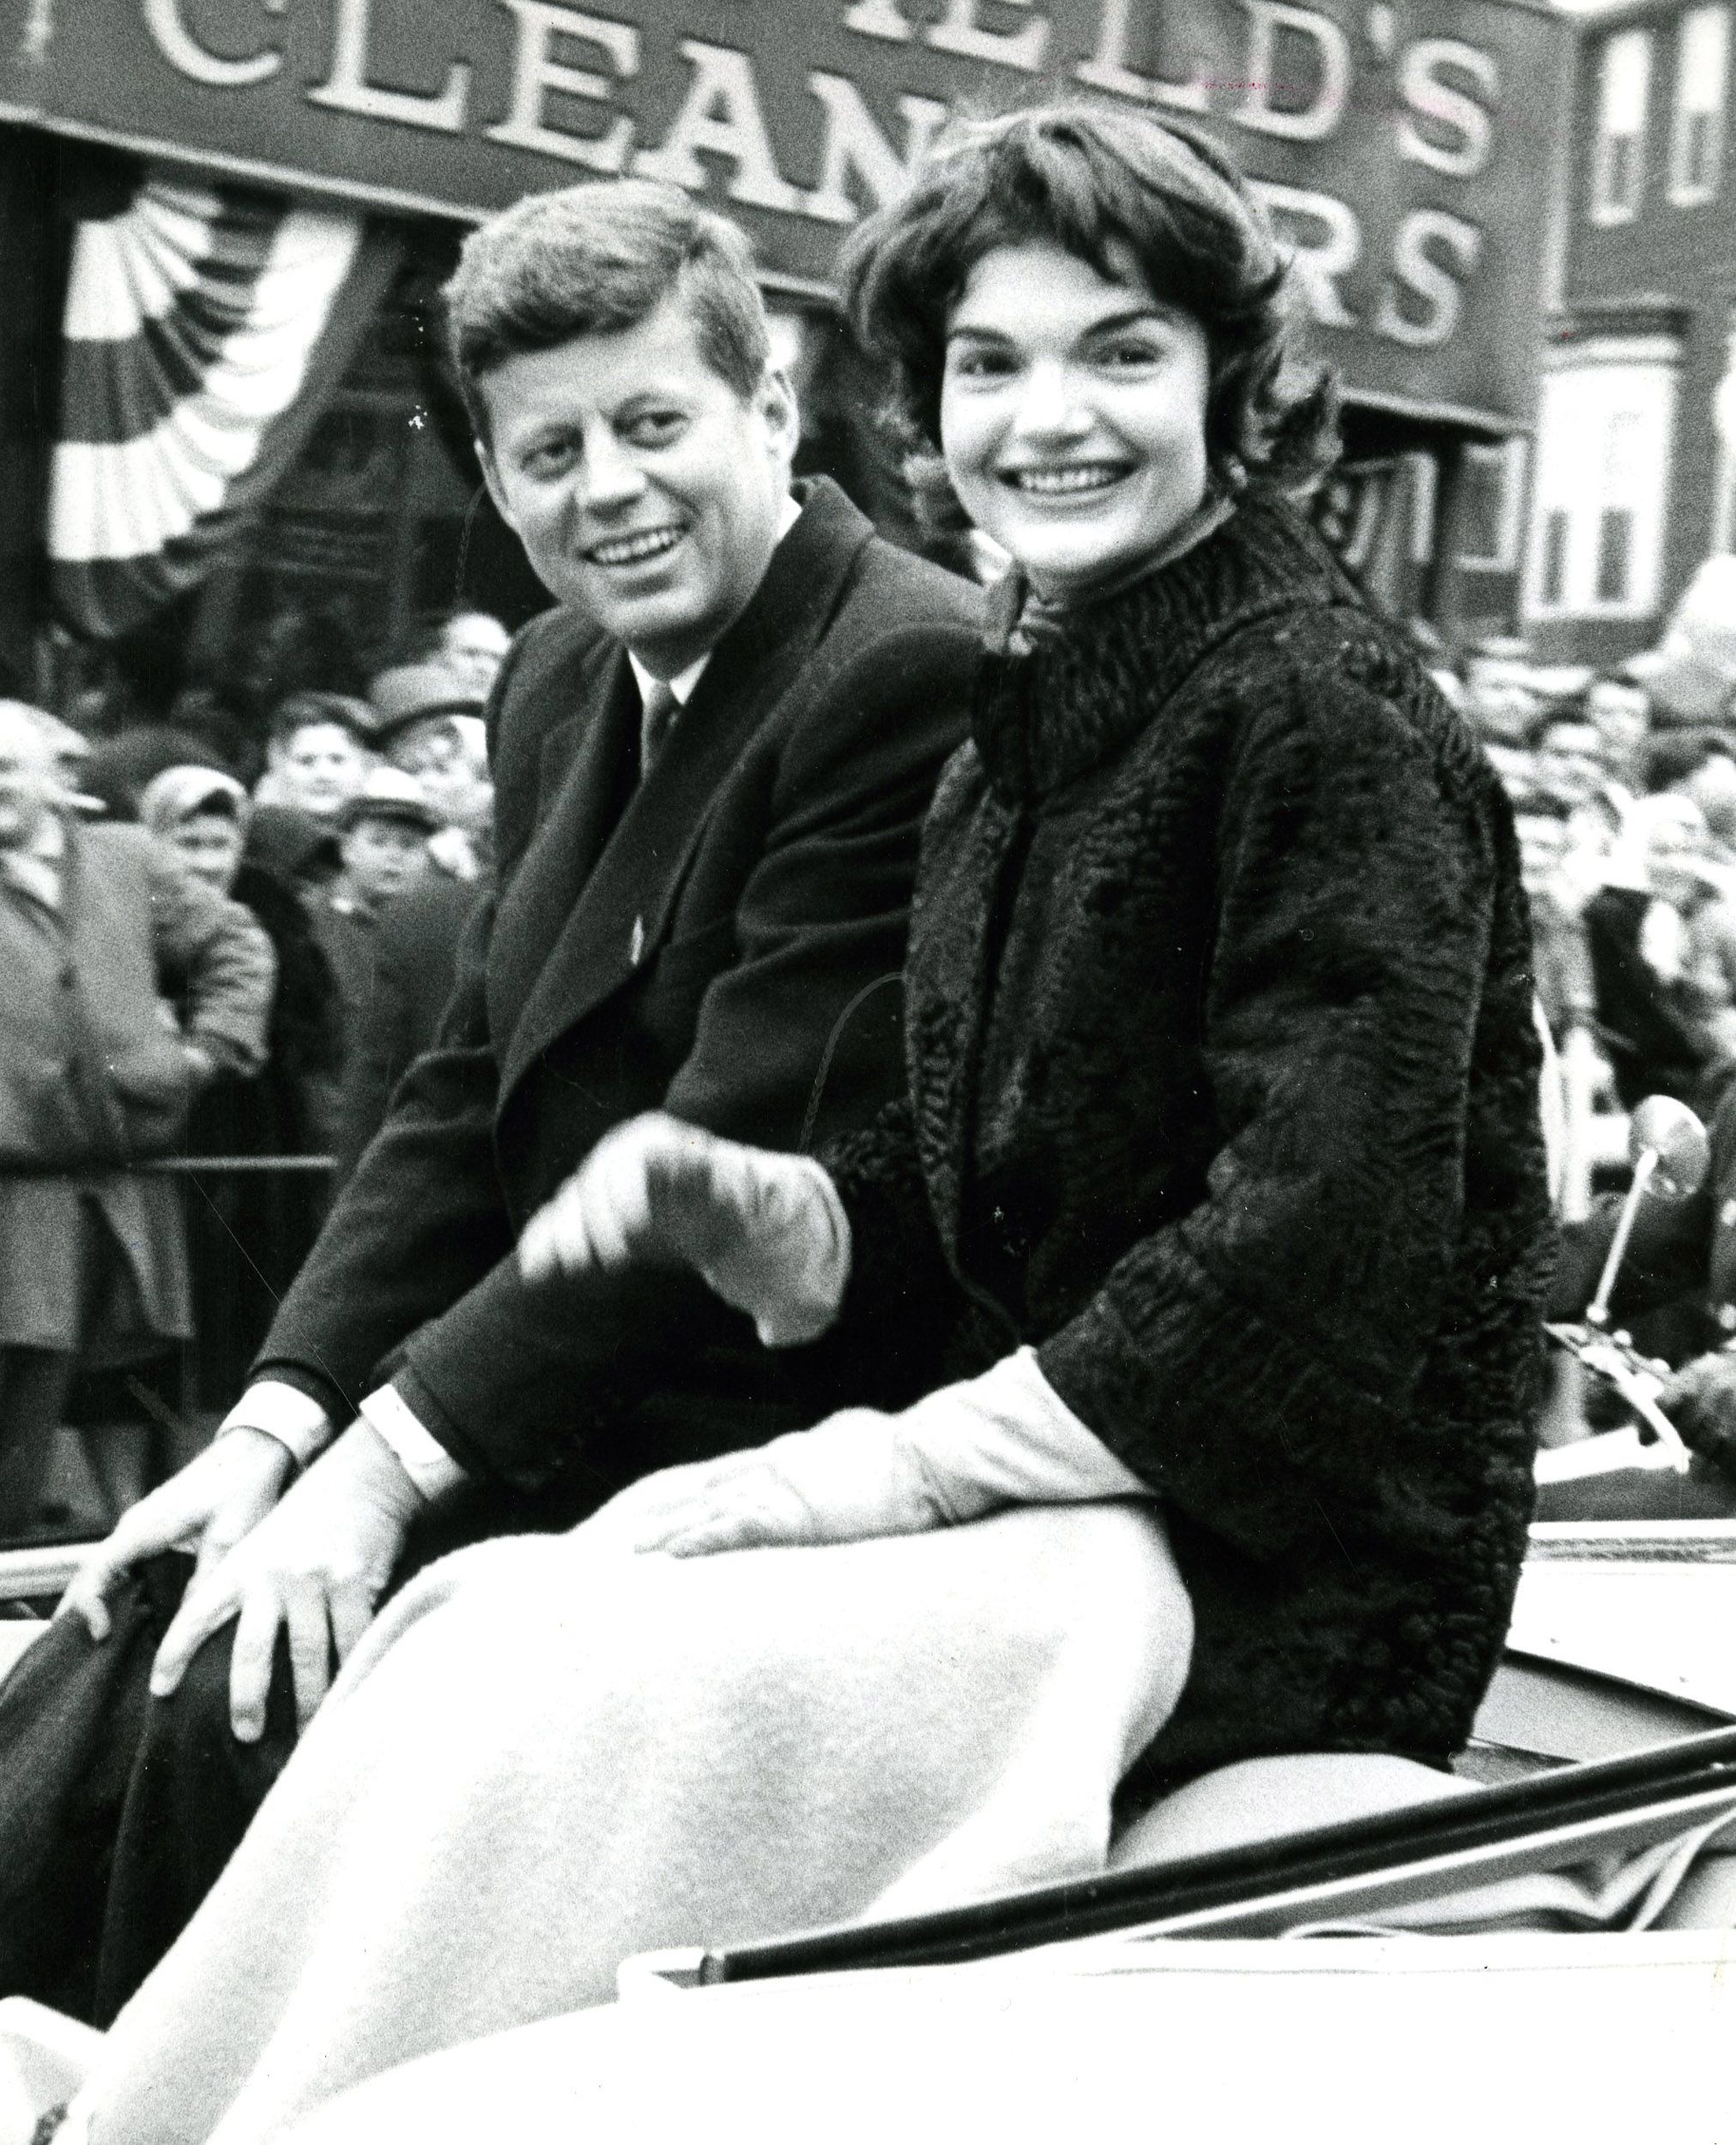 John F. Kennedy and his wife, Jacqueline, were crowd favorites at the St. Patrick's Day parade in South Boston in 1958.